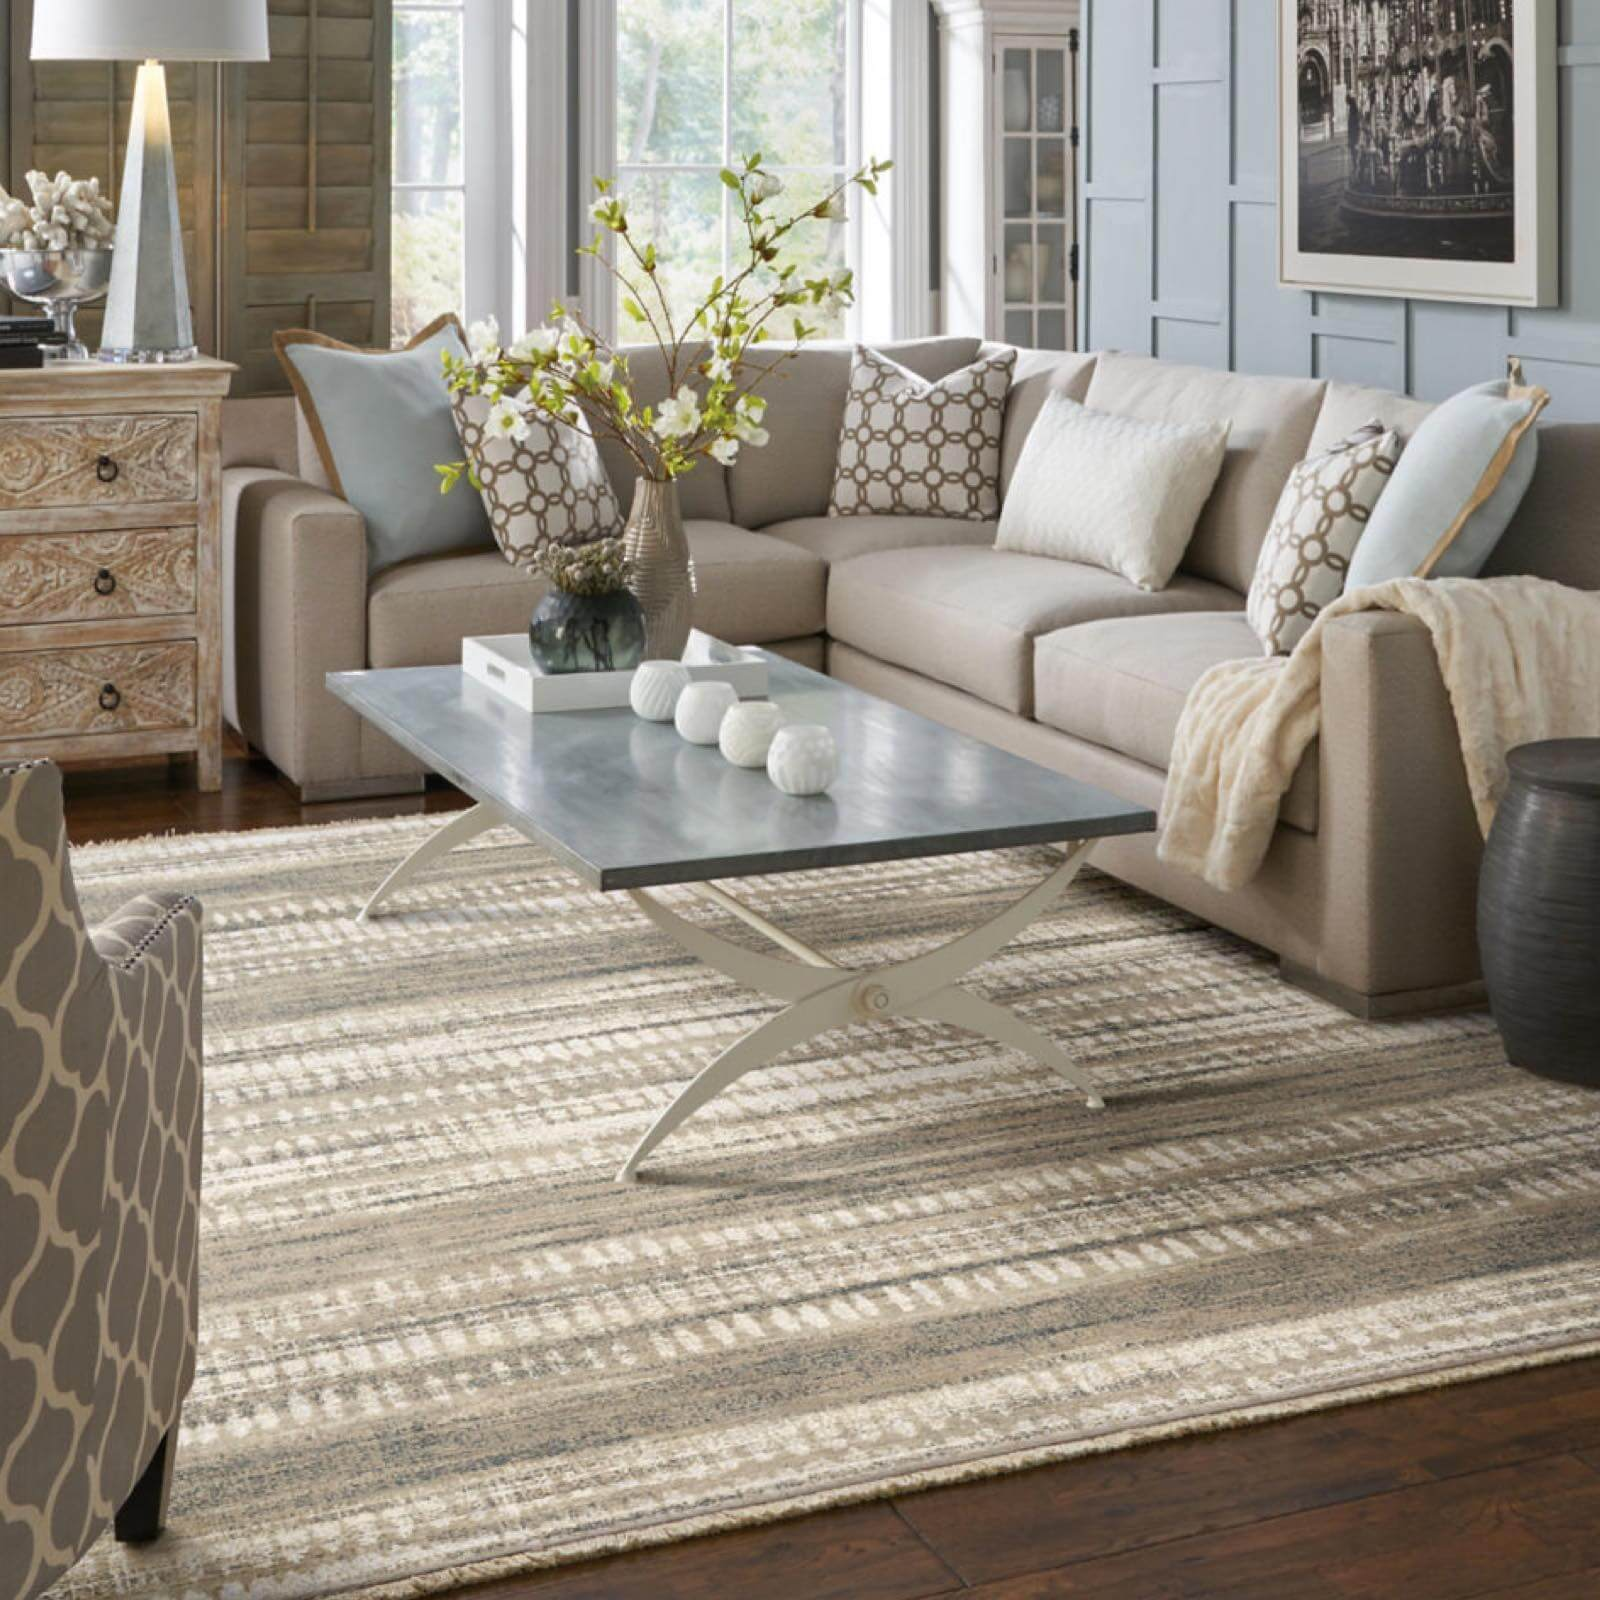 Living room area rug | The Carpet Factory Super Store